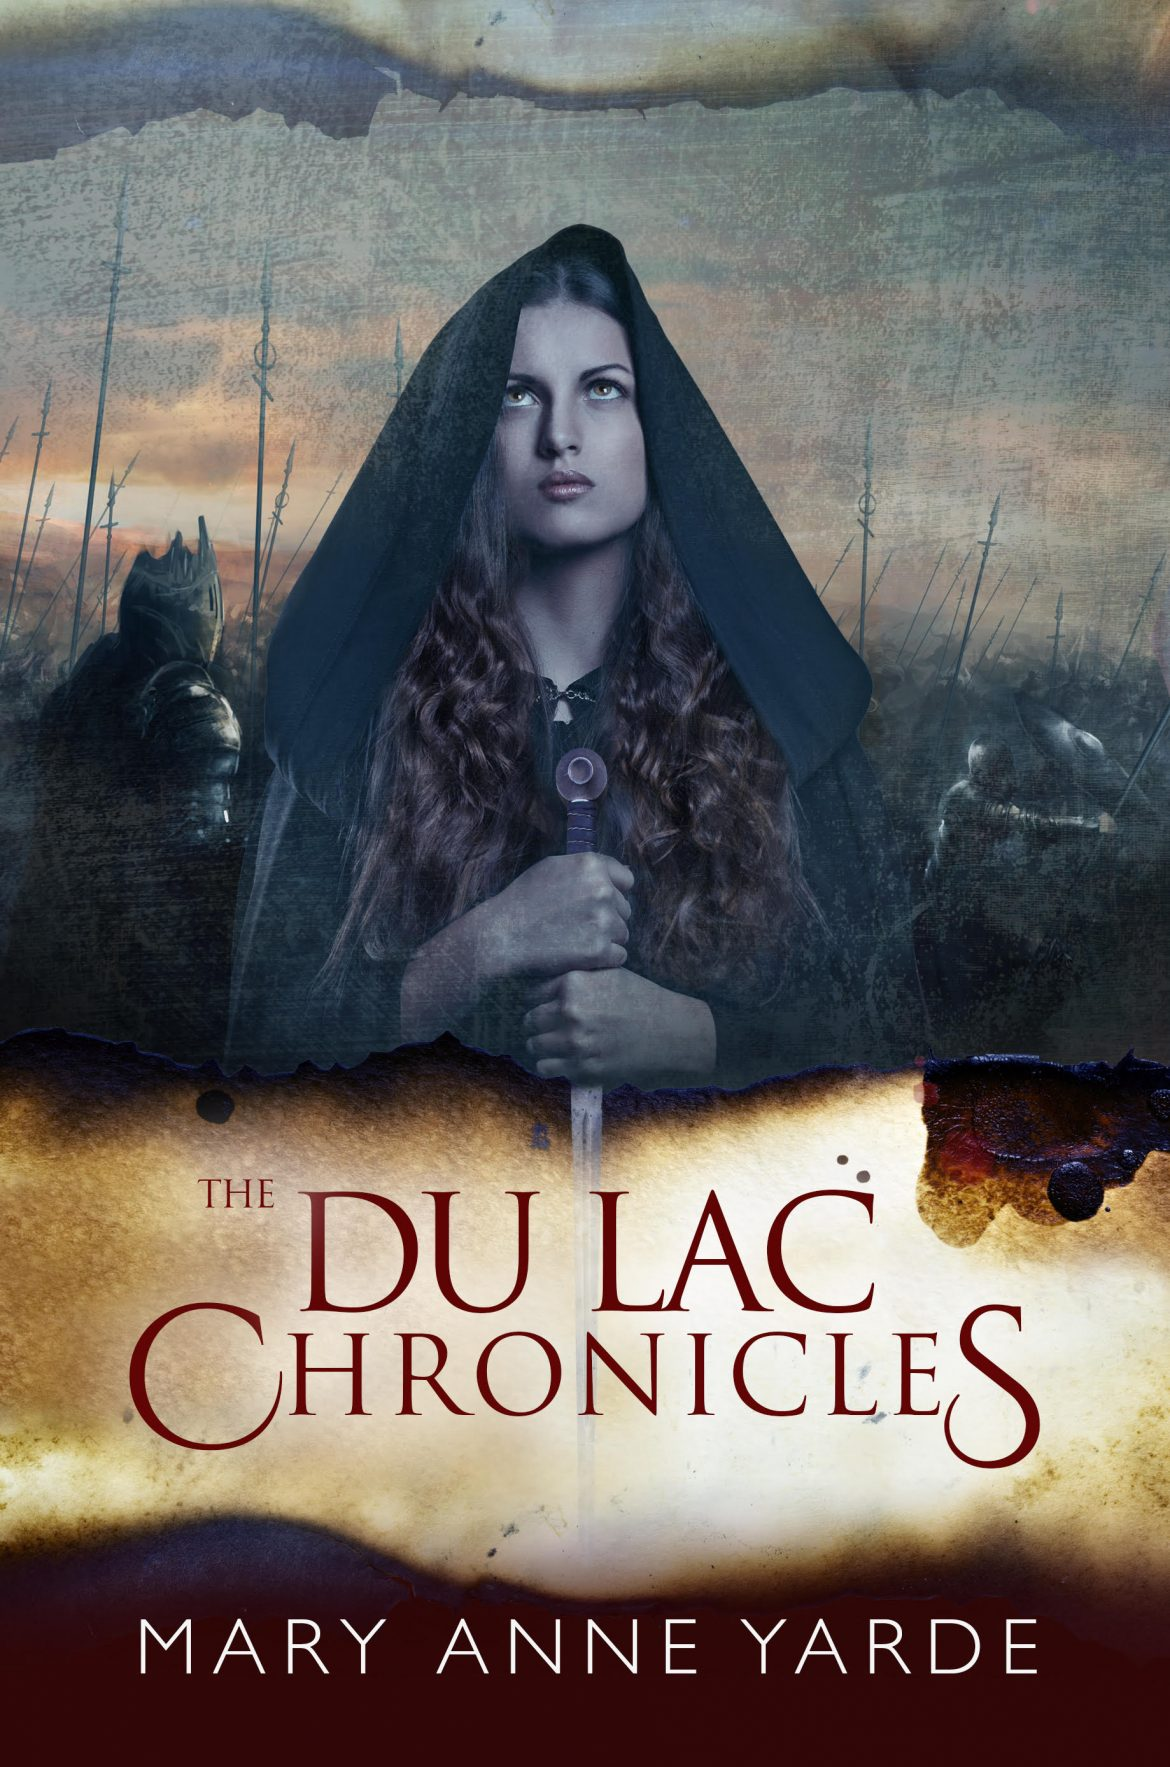 ARCHIVE: Mary Anne Yarde – Why I Wrote the Du Lac Chronicles